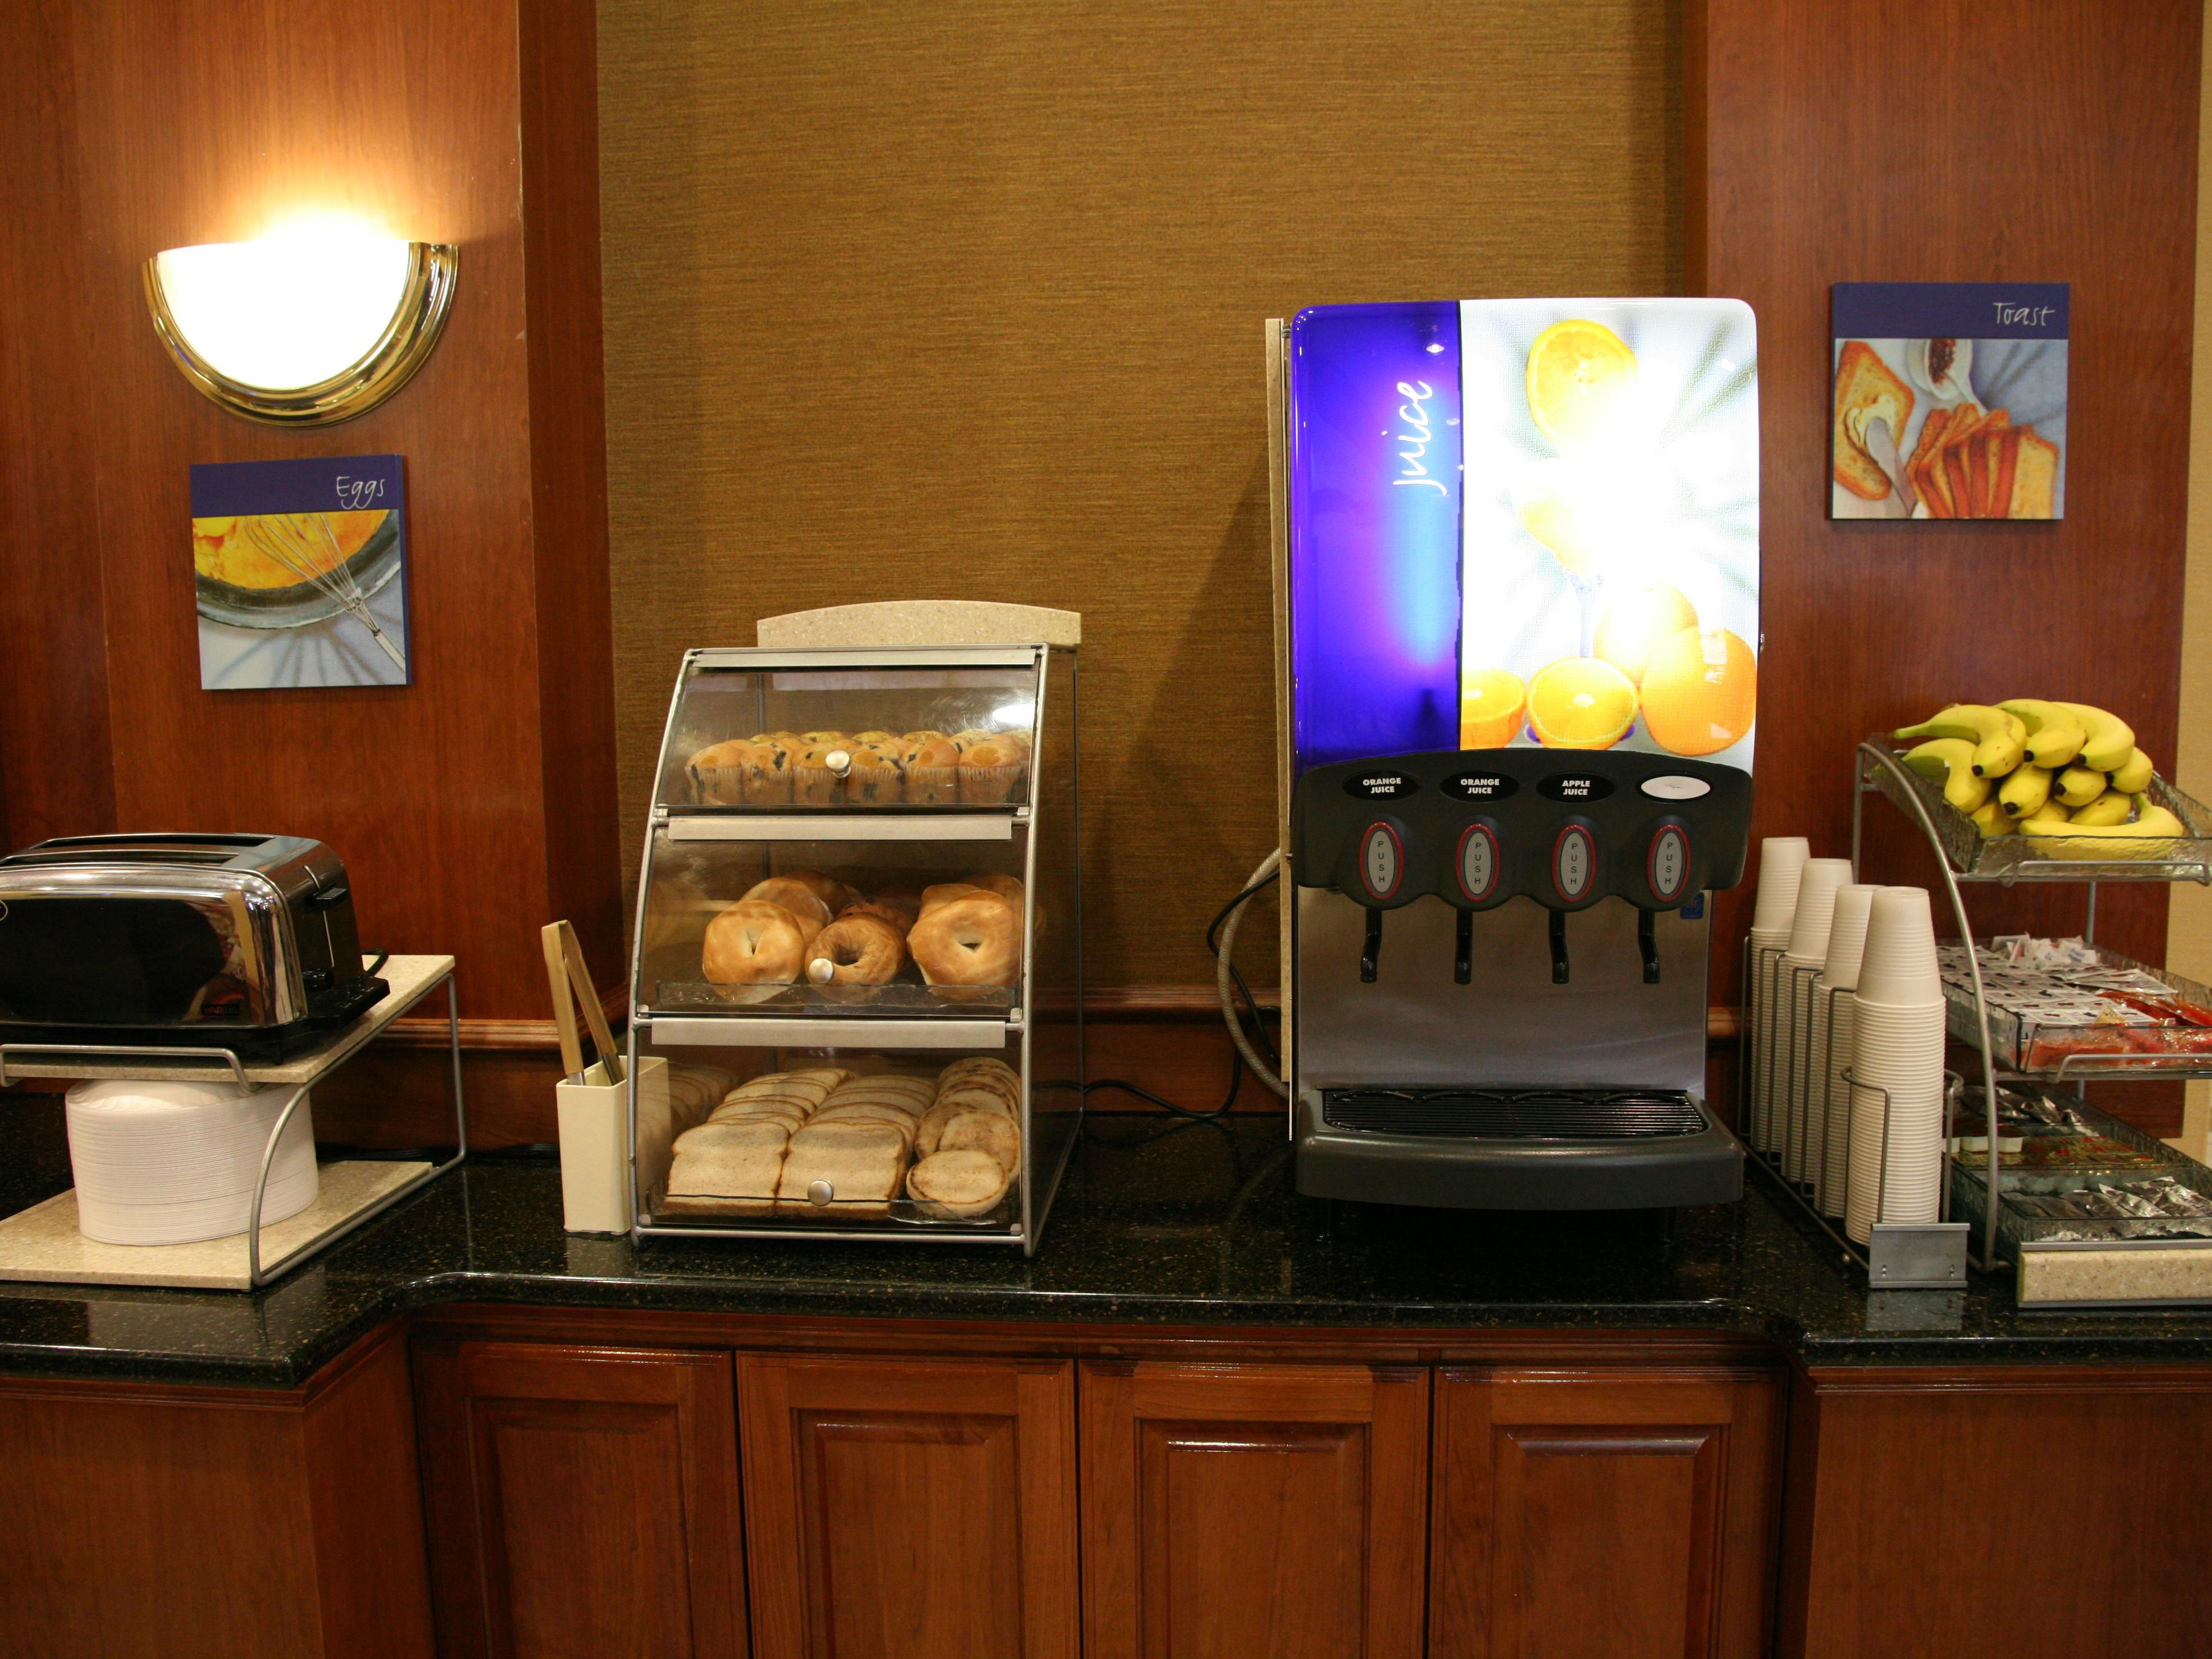 Baked Items and Beverages are Available Free during Breakfast